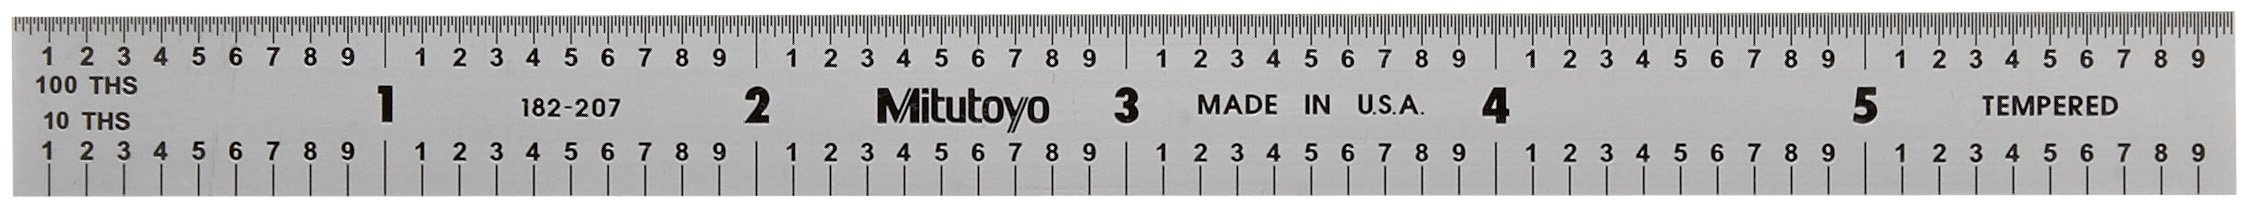 Mitutoyo 182-207, Steel Rule, 6'' X 150mm, (1/10, 1/100'', 1mm, 1/2mm), 1/64'' Thick X 1/2'' Wide, Satin Chrome Finish Tempered Stainless Steel by Mitutoyo